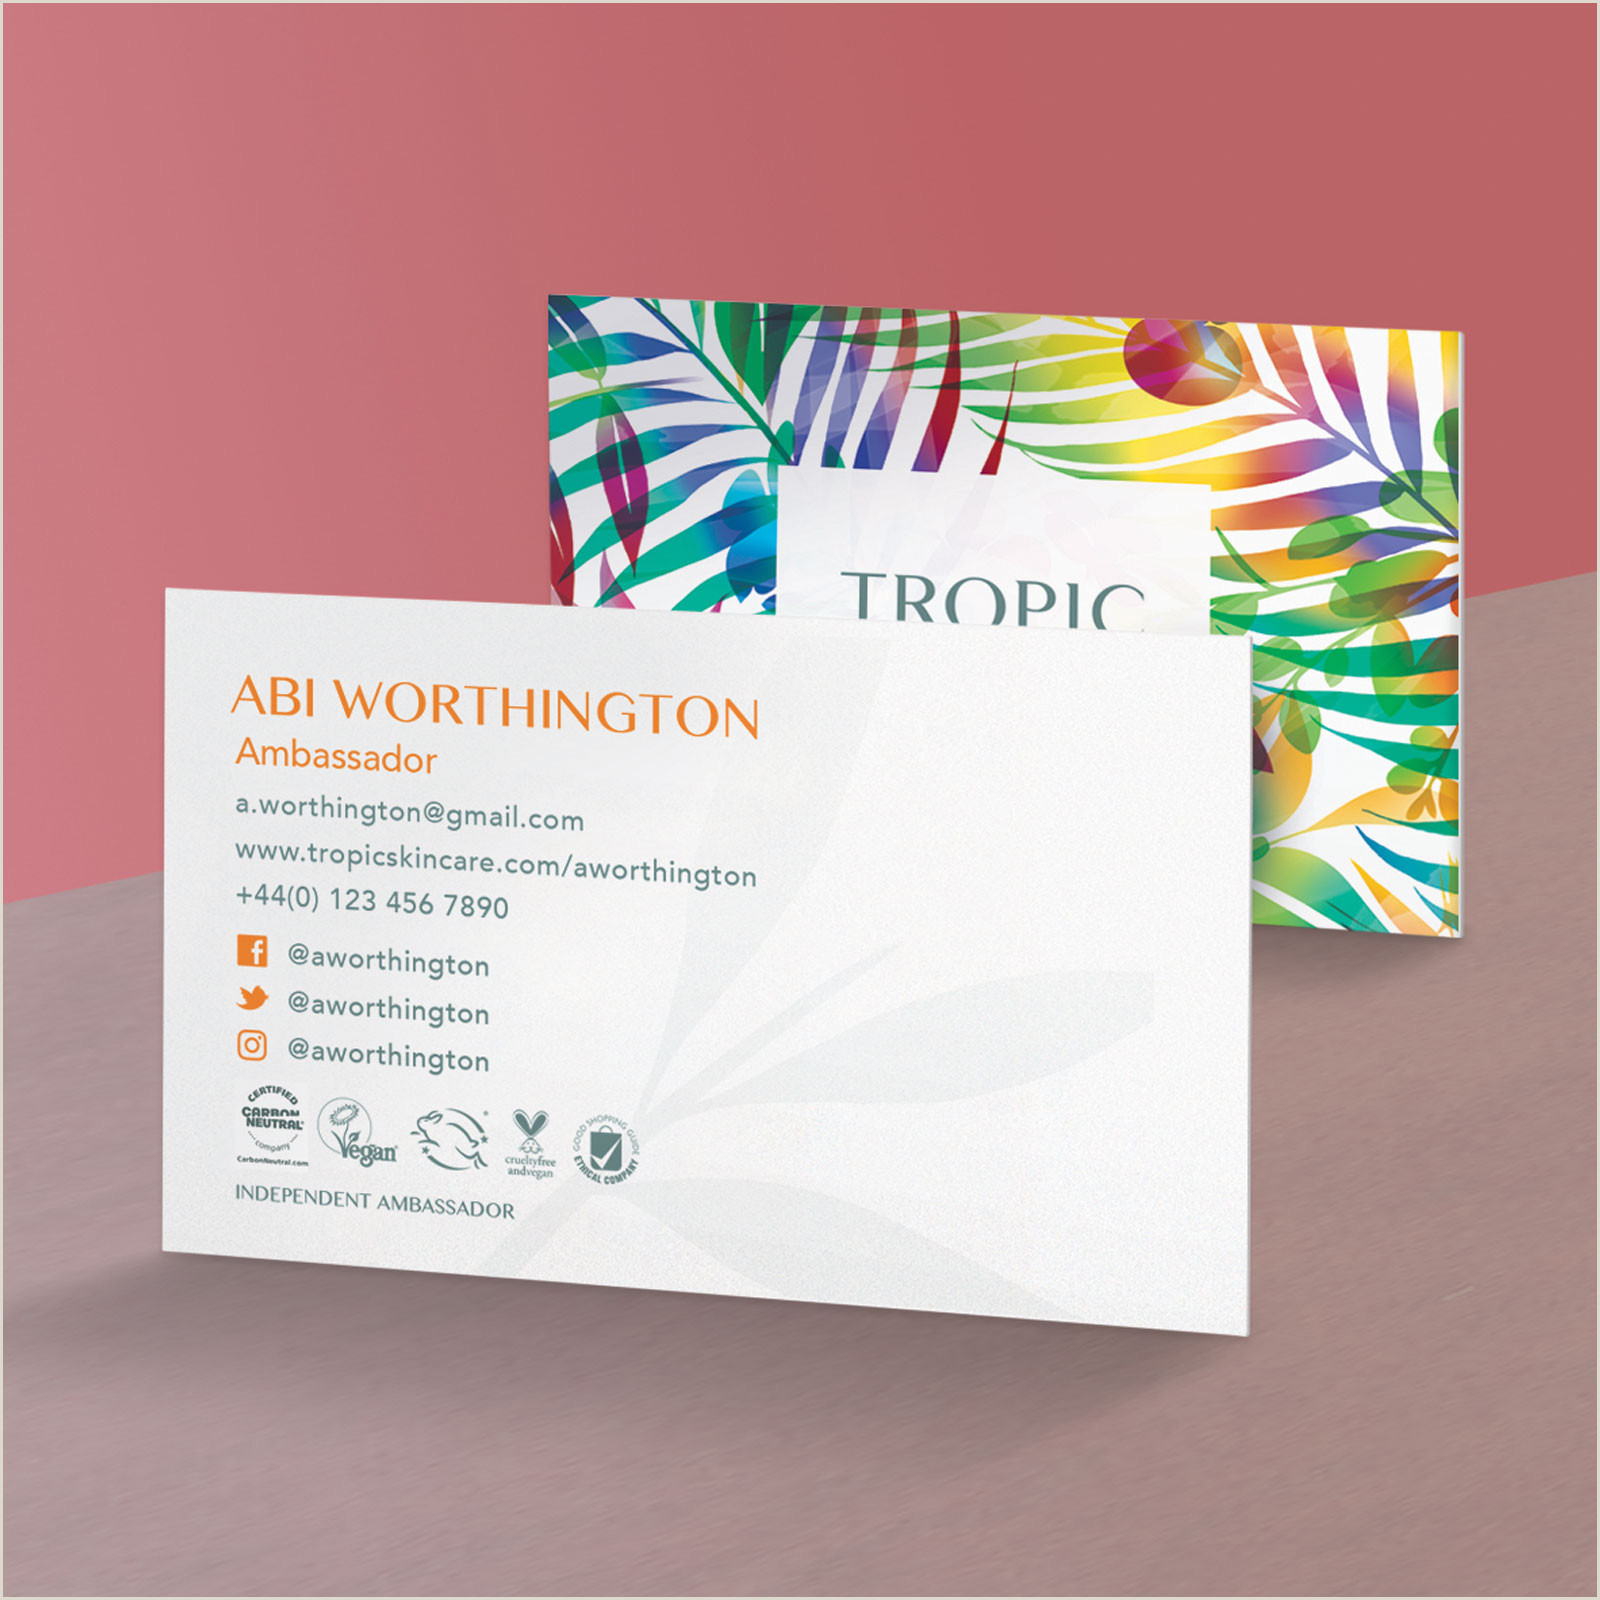 Design And Print Your Own Business Cards Upload A Design Laminated Business Cards